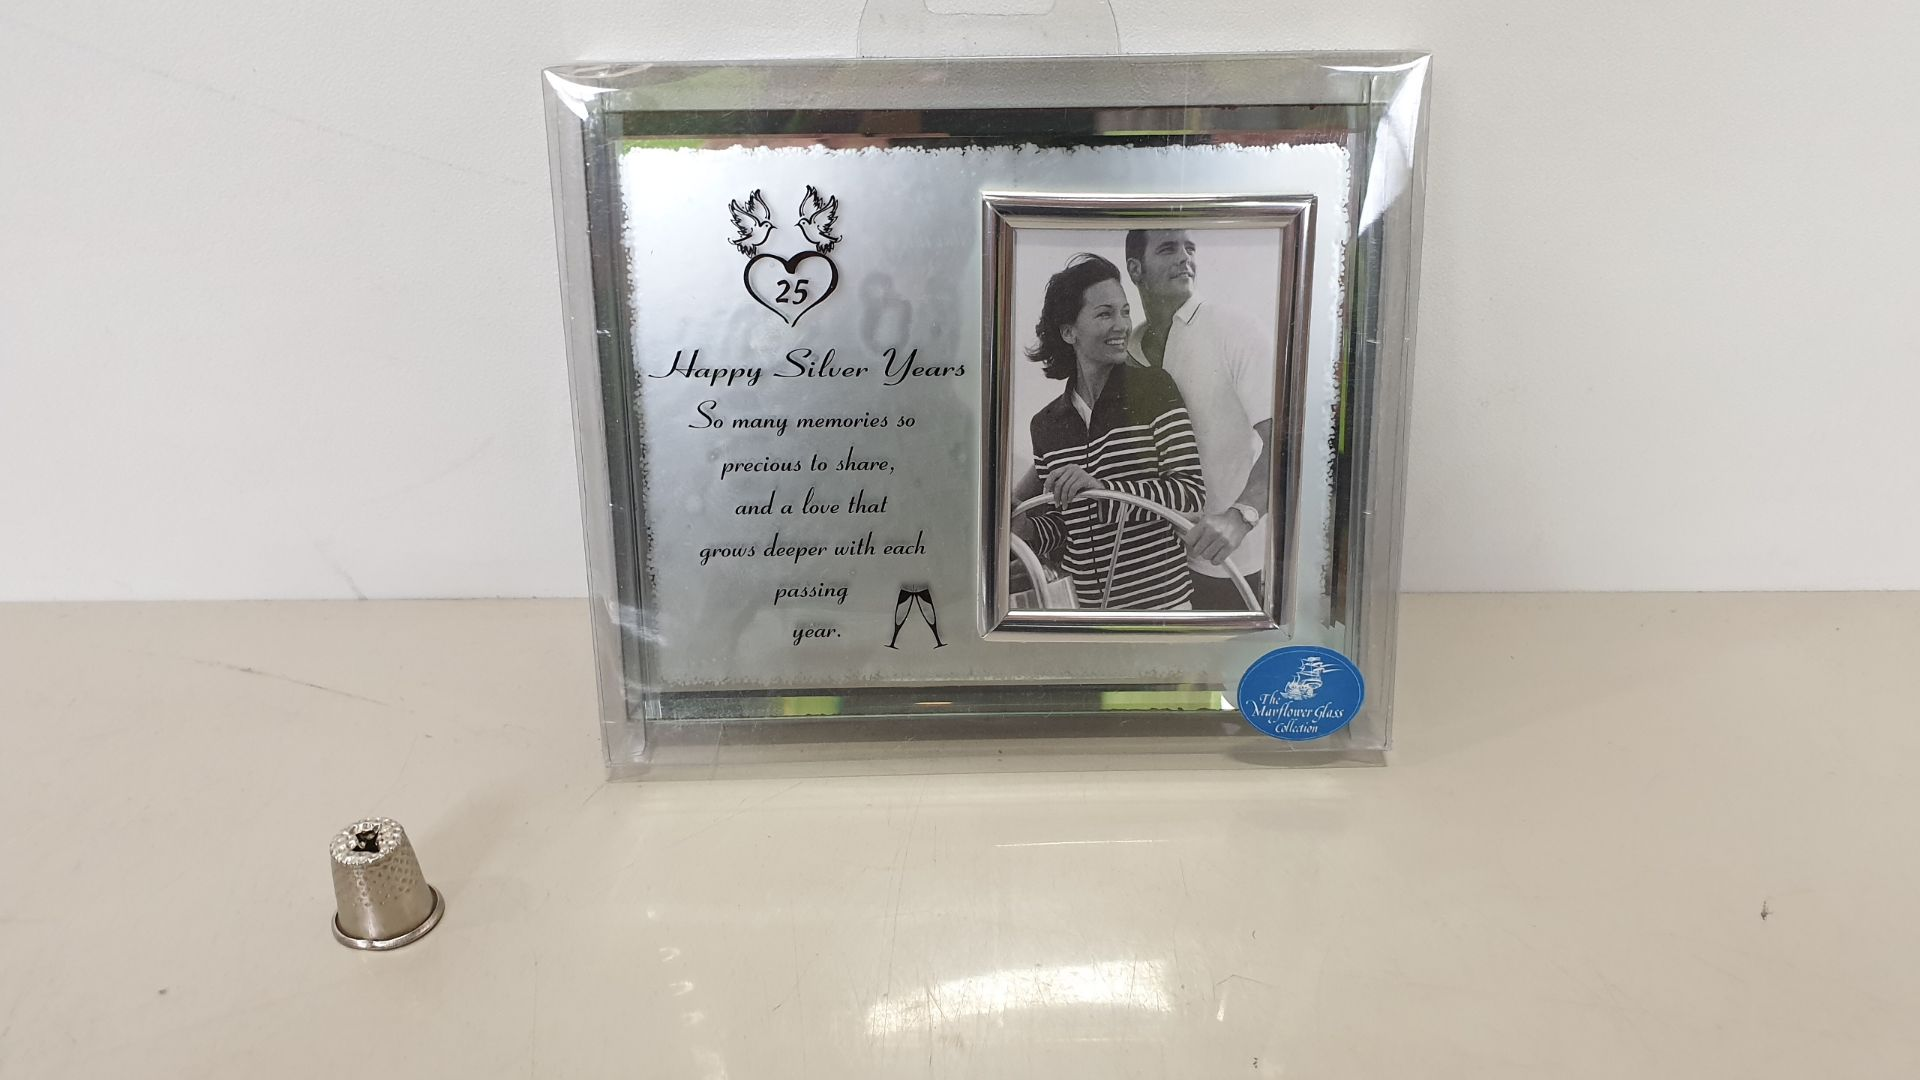 Lot 639 - 144 X BRAND NEW 'THE MAYFLOWER GLASS COLLECTION' SILVER ANNIVERSARY FRAME 'HAPPY SILVER YEARS' -